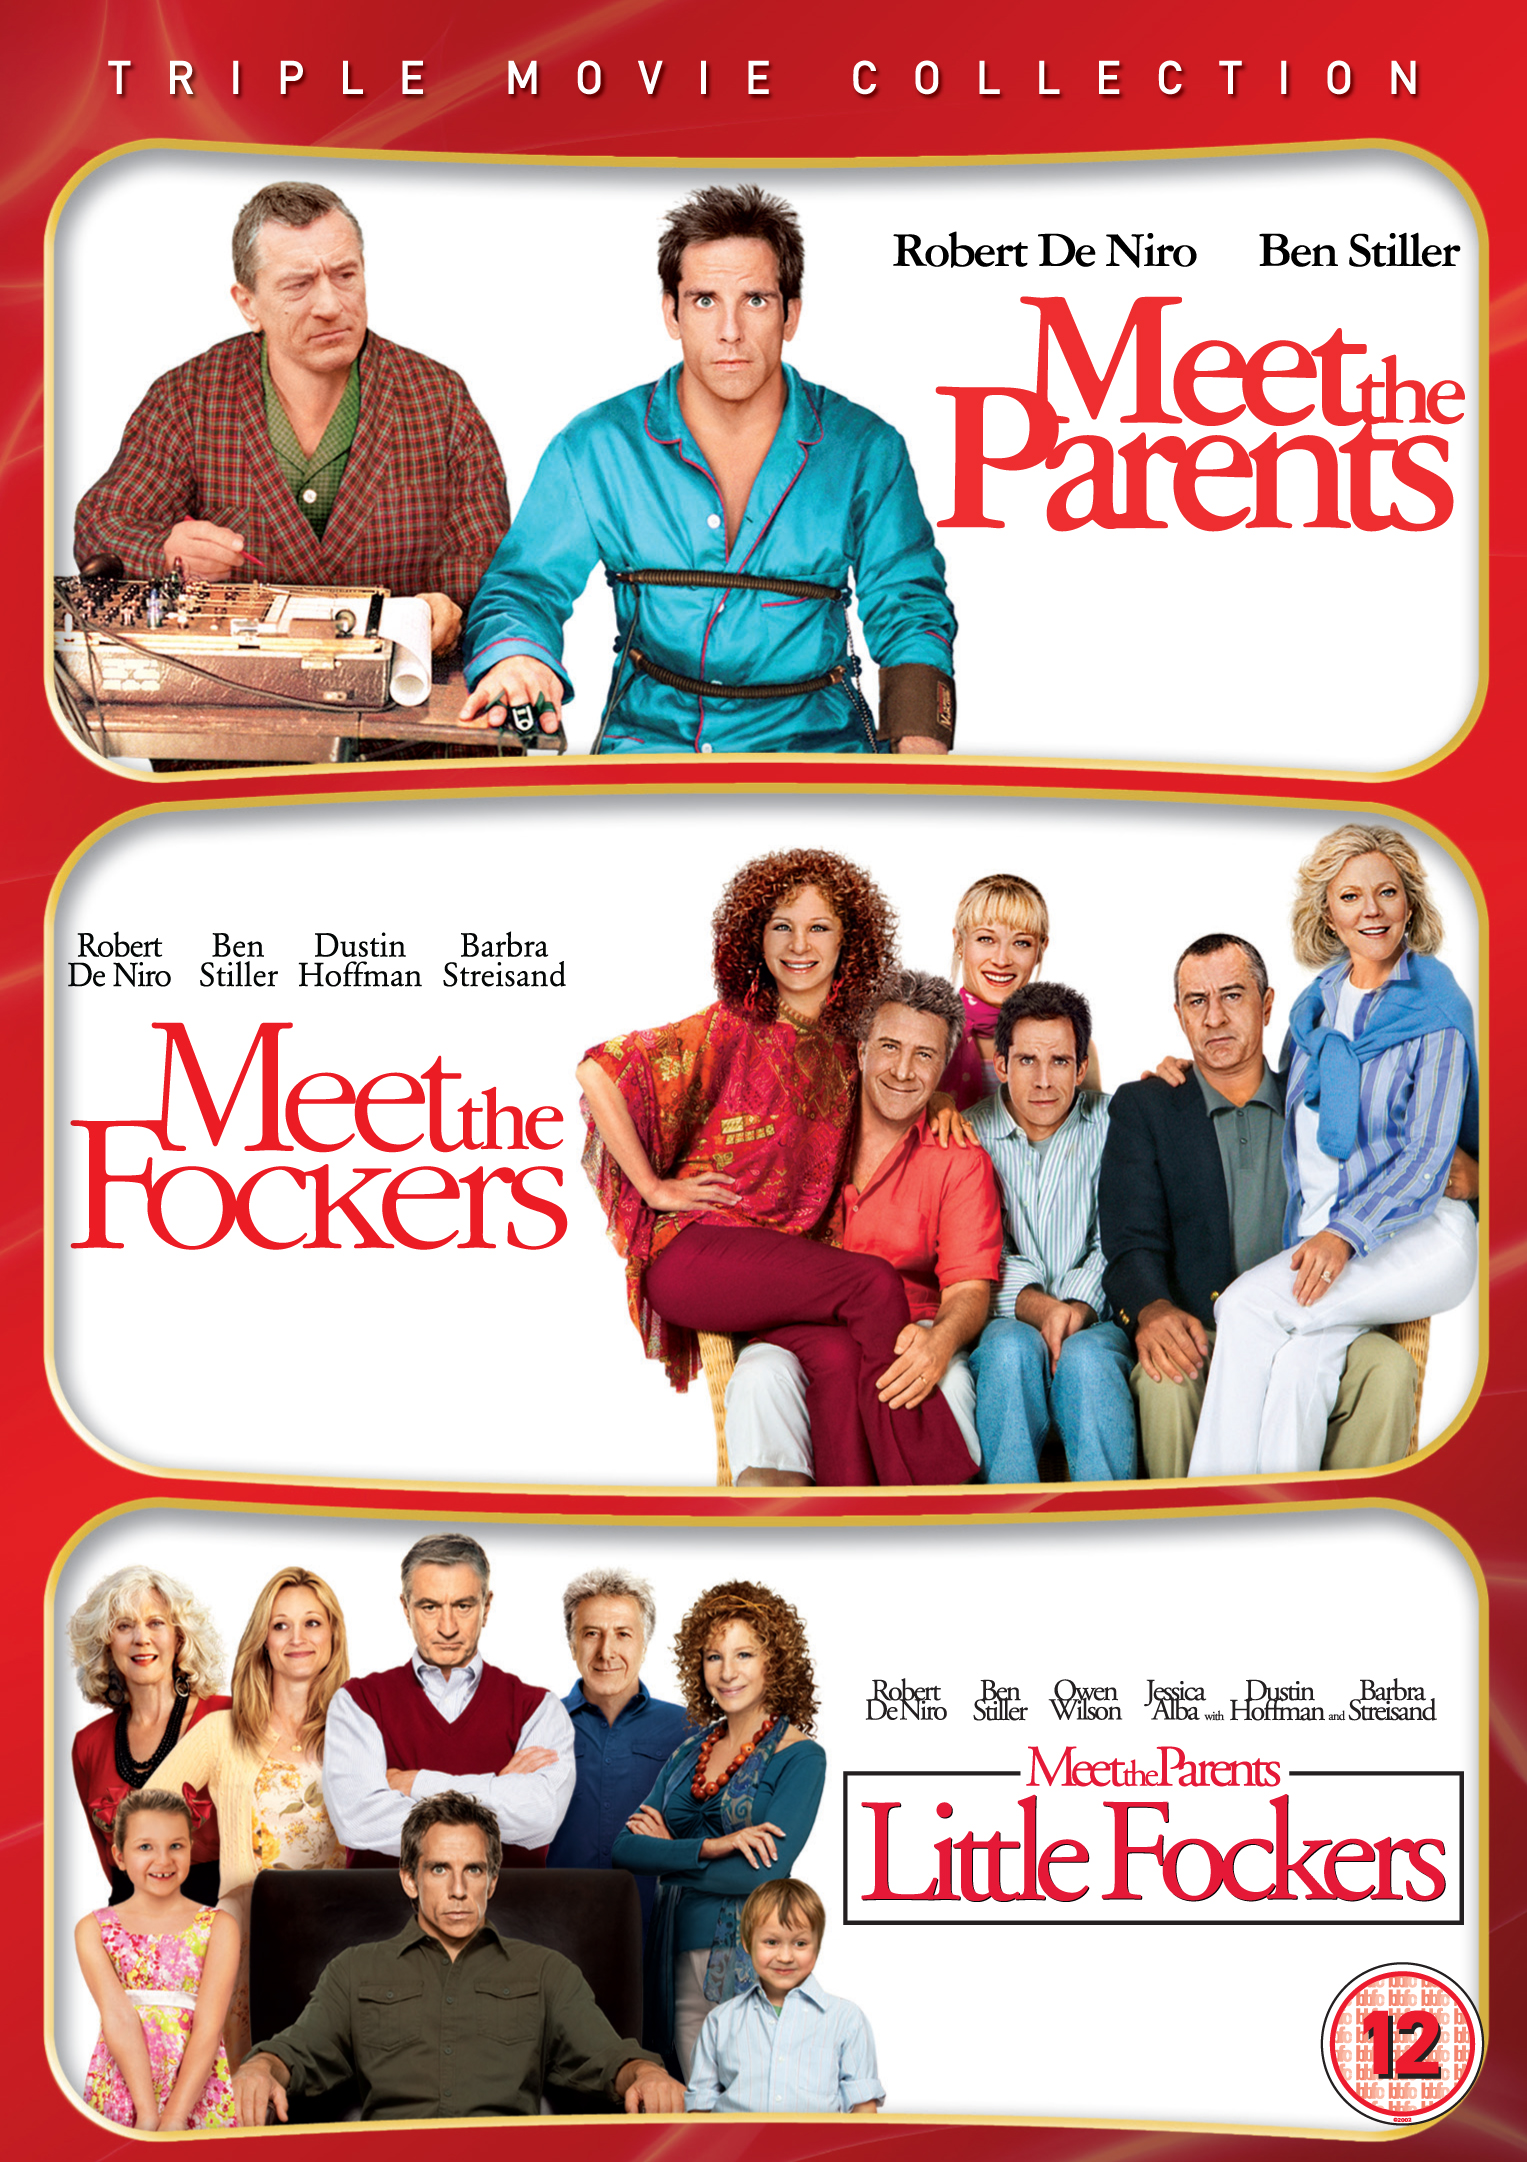 New meet the parents movie